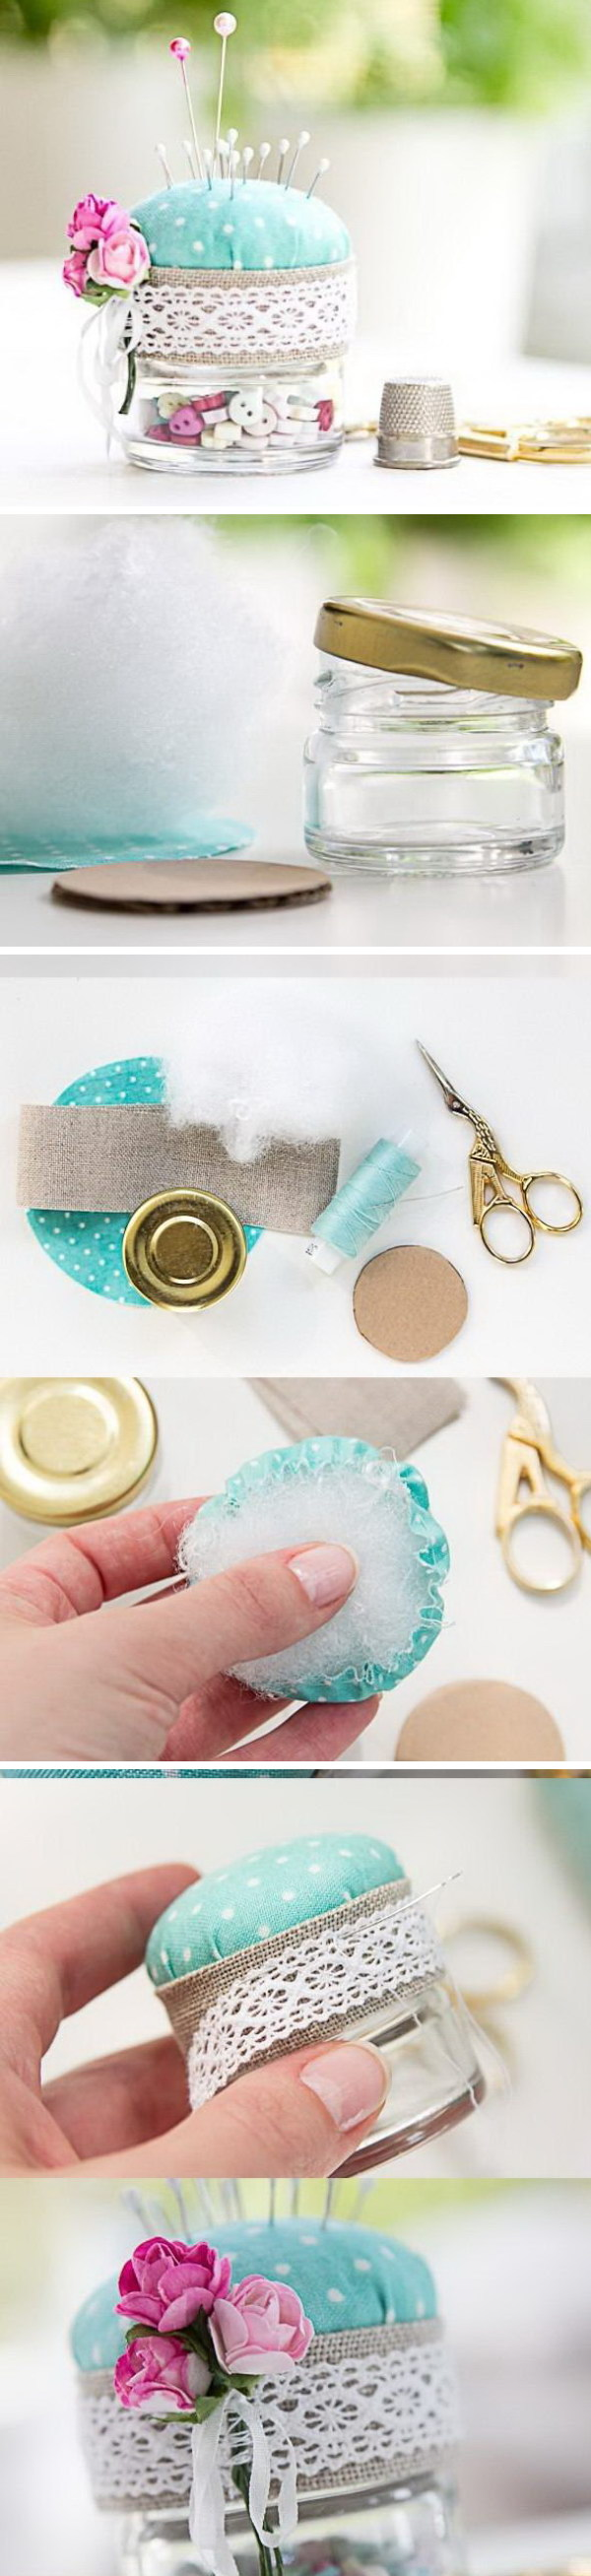 DIY Pincushion from a Jar.